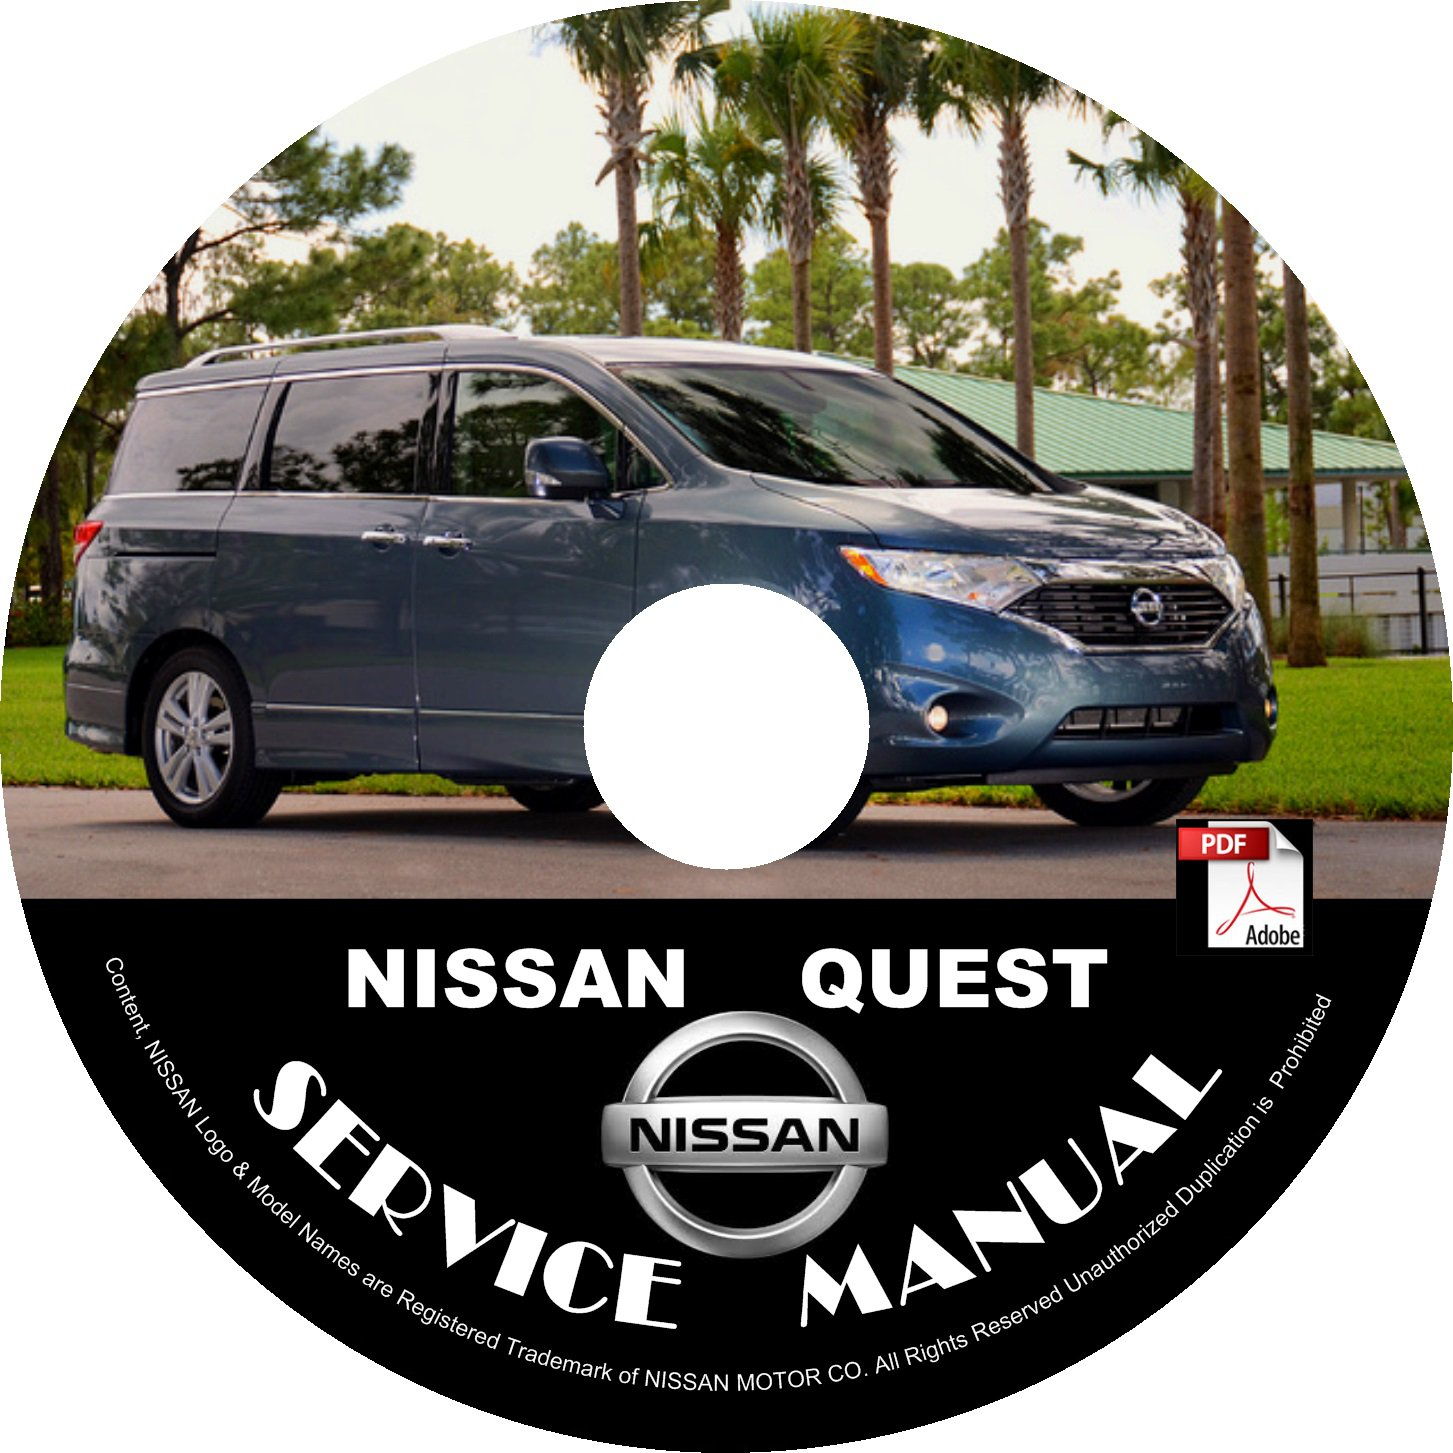 2014 Nissan Quest Minivan Factory Service Repair Shop Manual on CD Fix Rebuilt